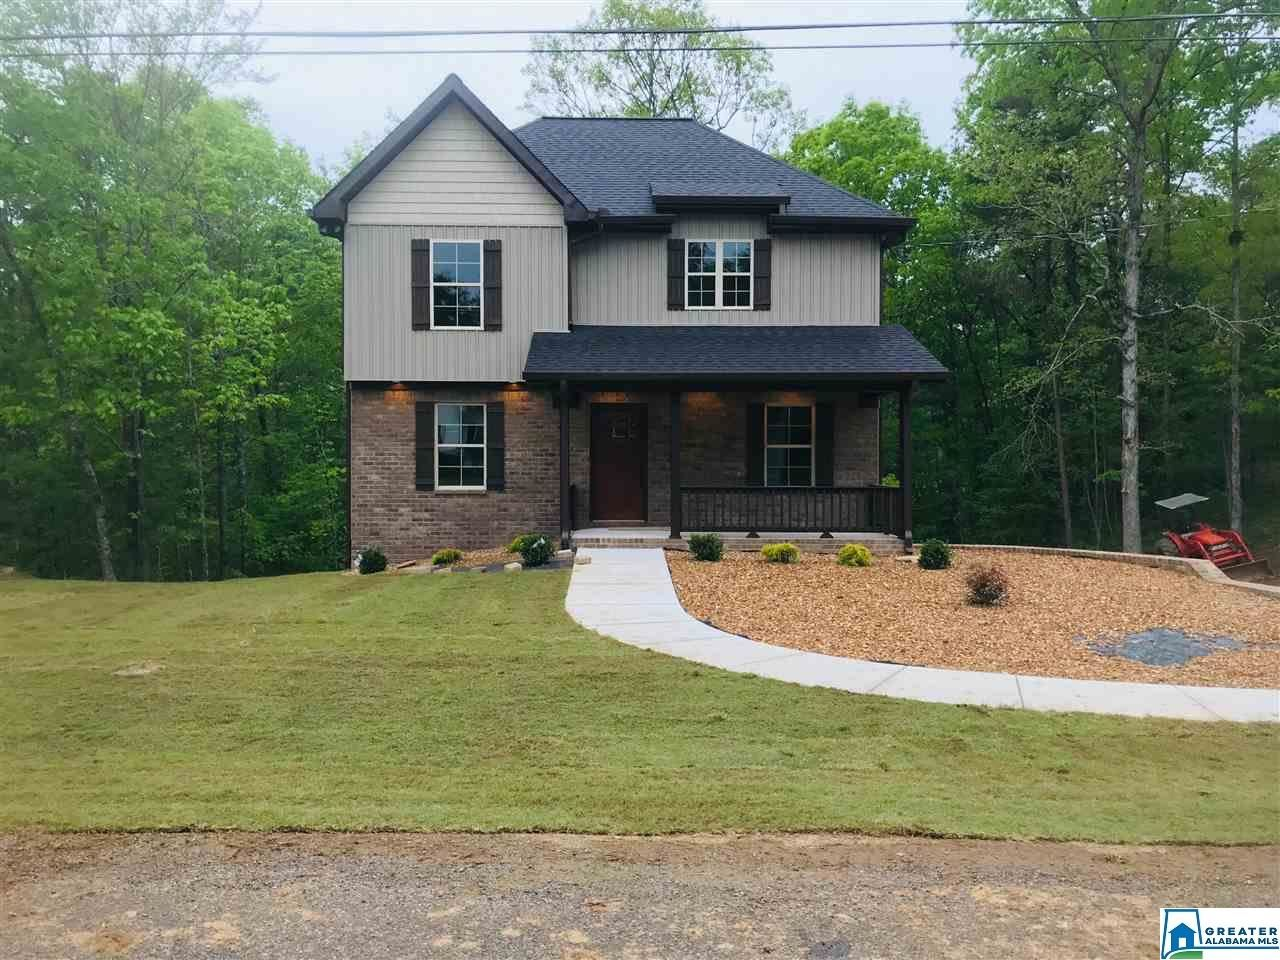 54 LEE CIR, Hayden, AL 35079 - #: 878365